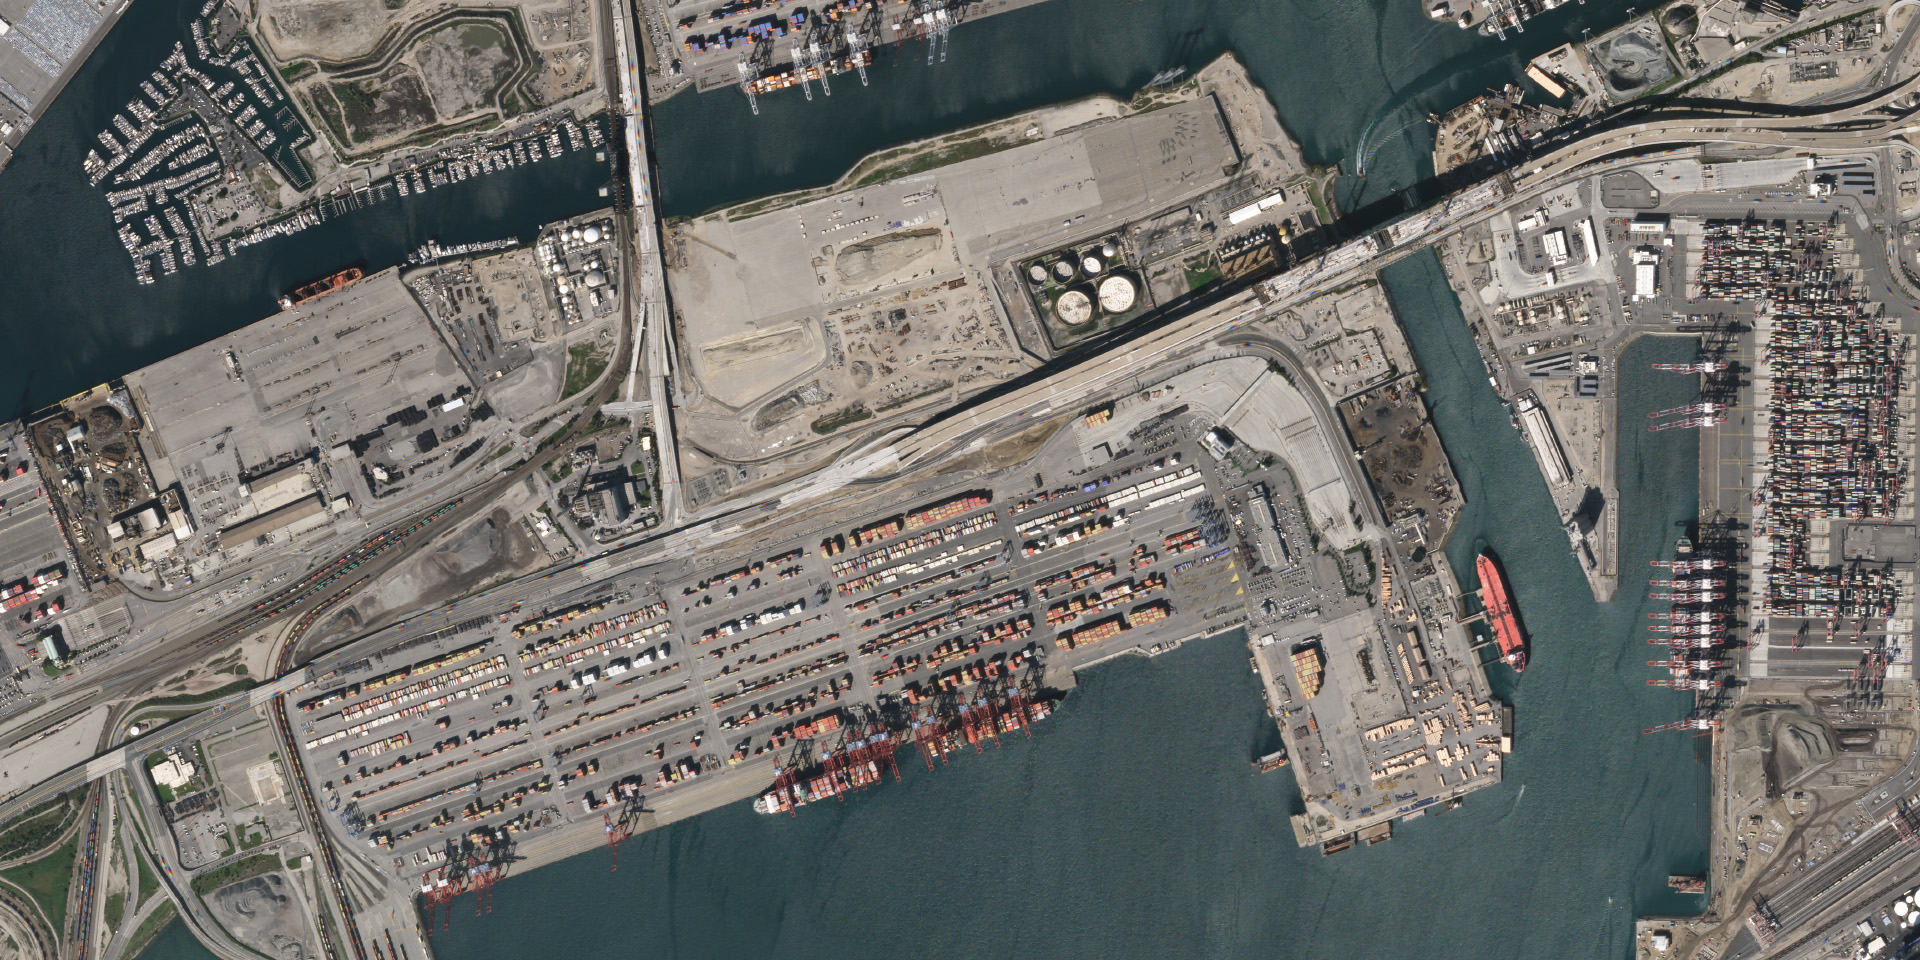 The busy port of Long Beach, California on February 14, 2020. © 2020, Planet Labs Inc. All Rights Reserved.